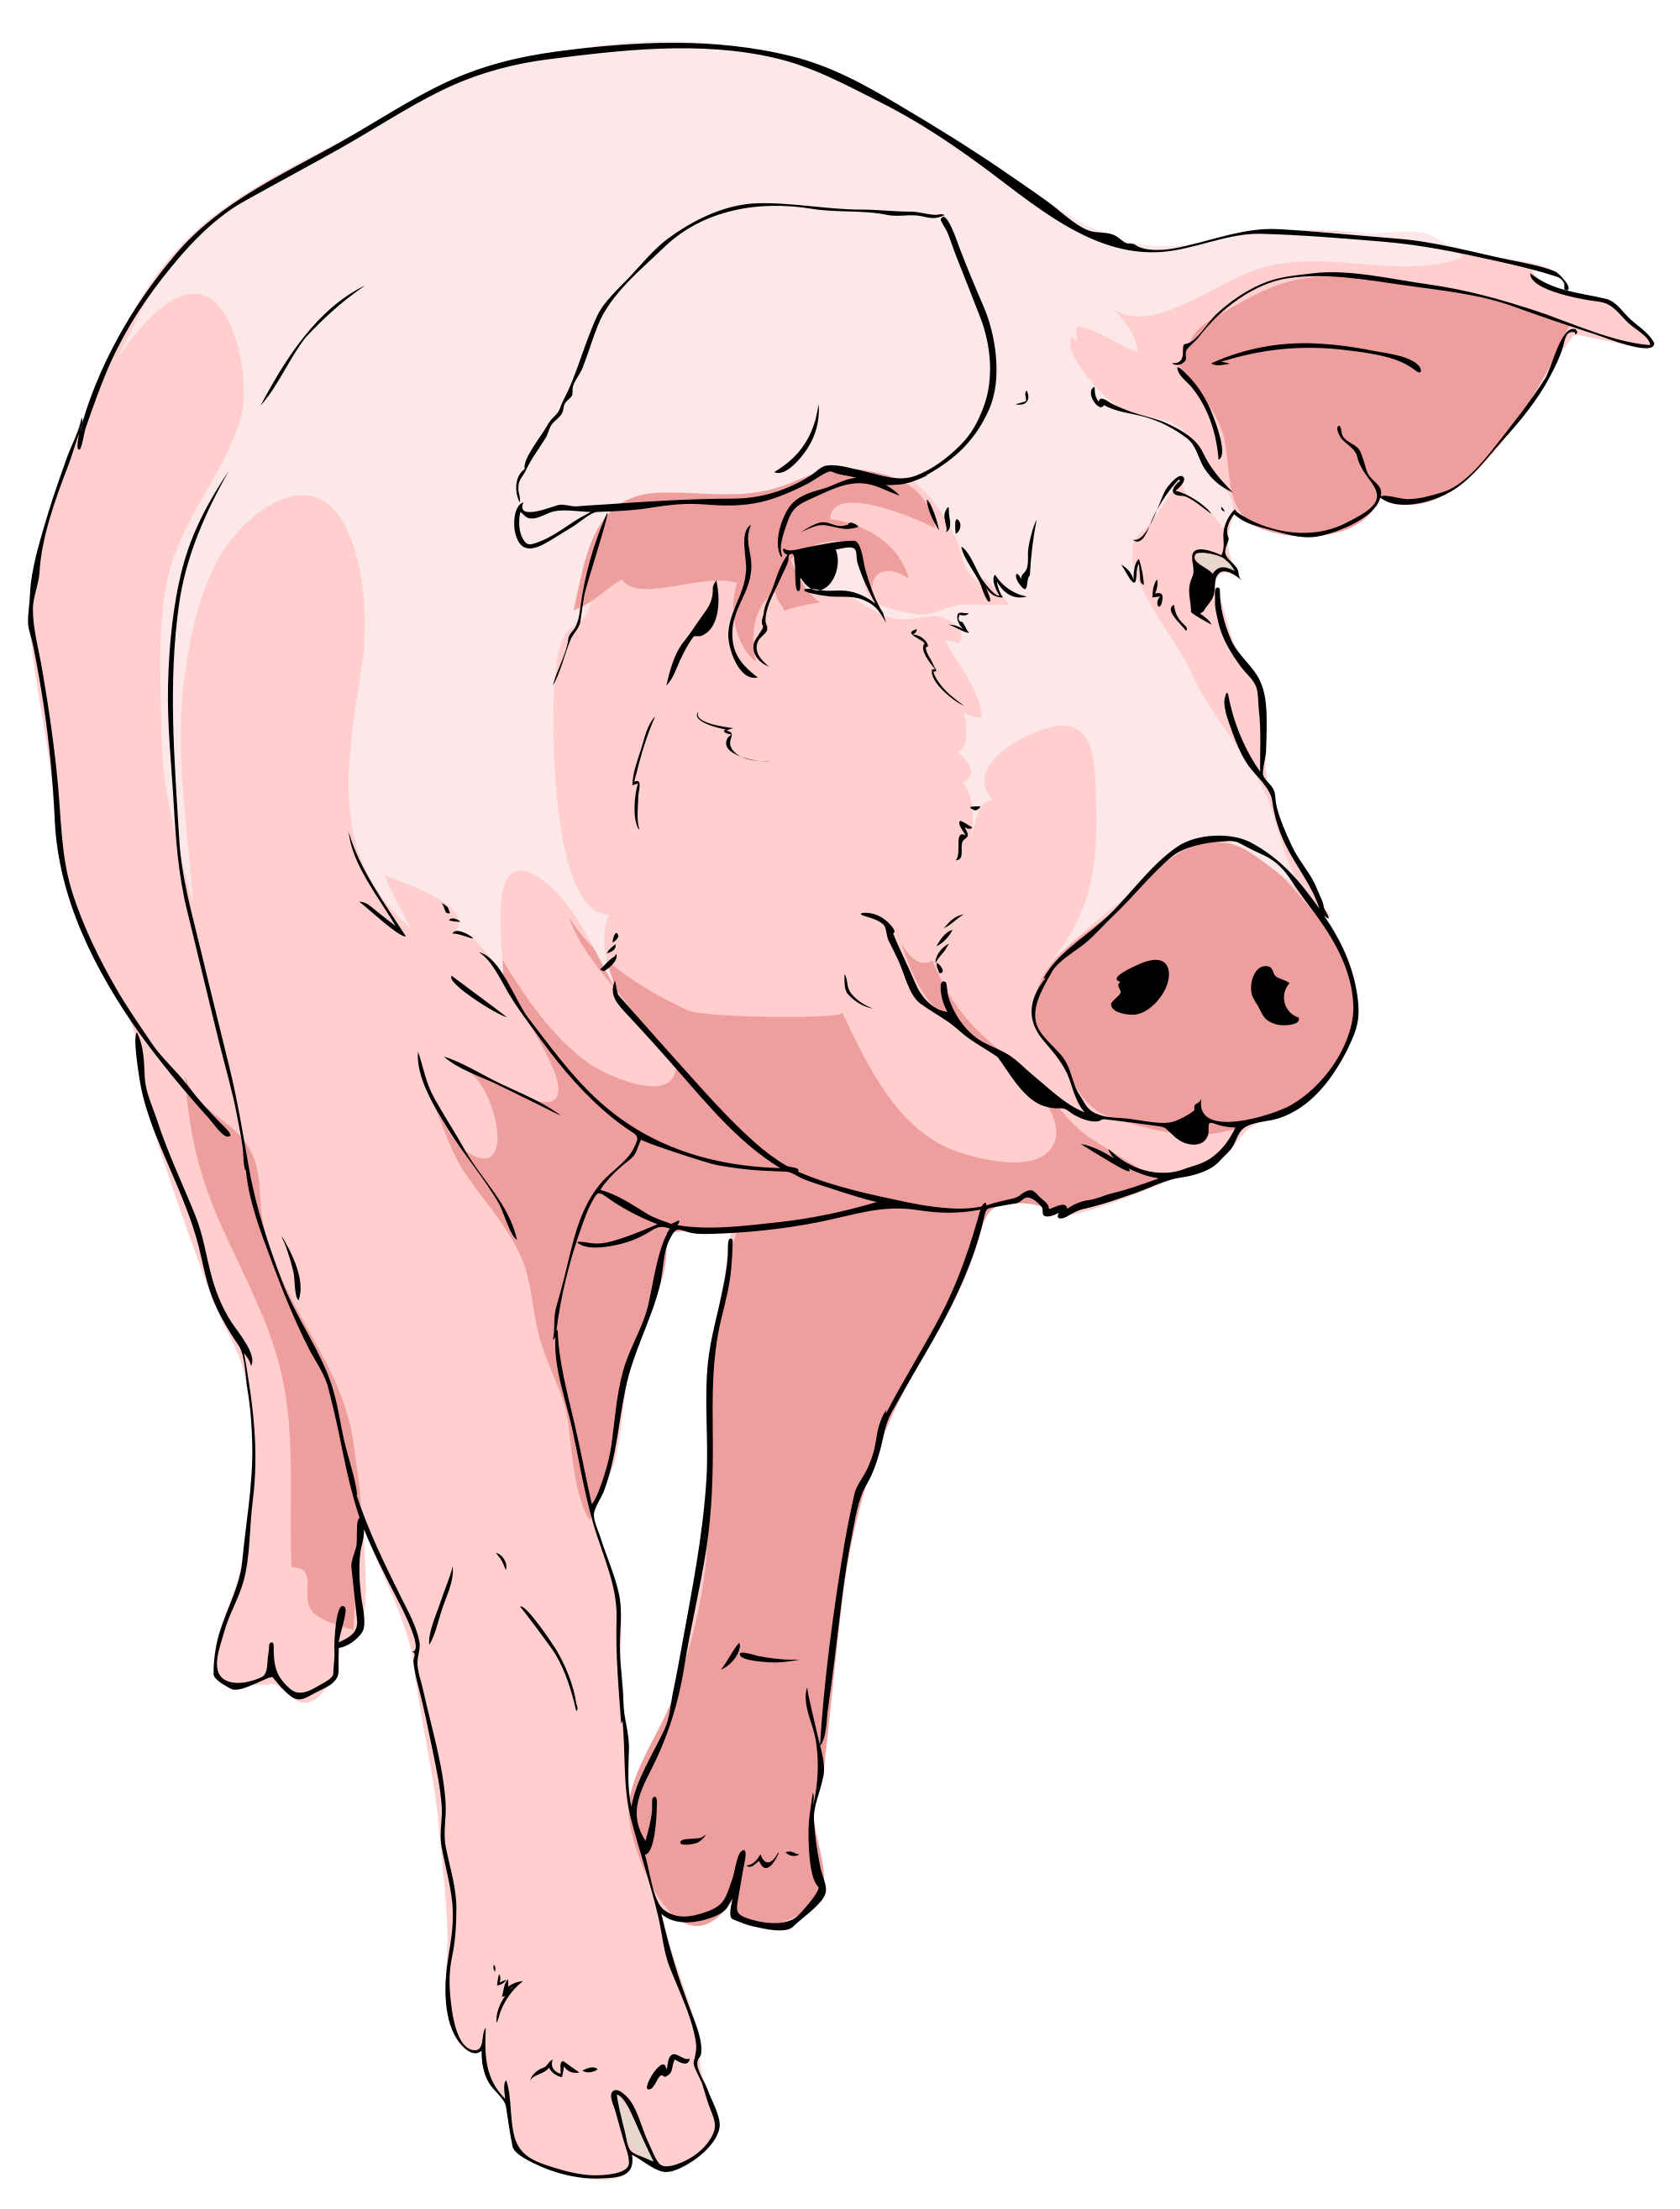 Pig clipart #1, Download drawings